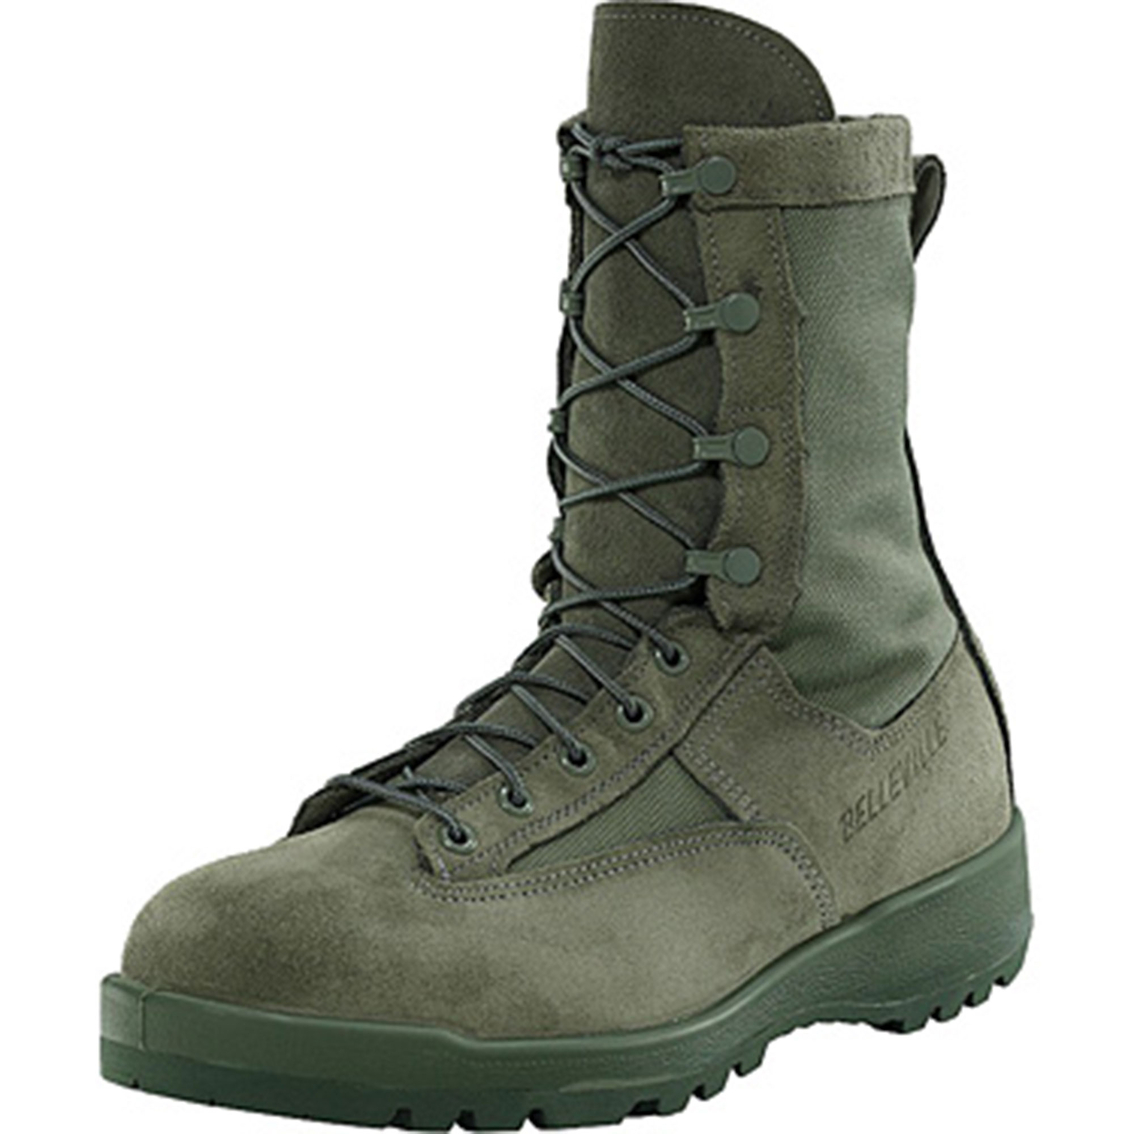 Belleville Waterproof Flight Boots 690 | Air Force Boots ...